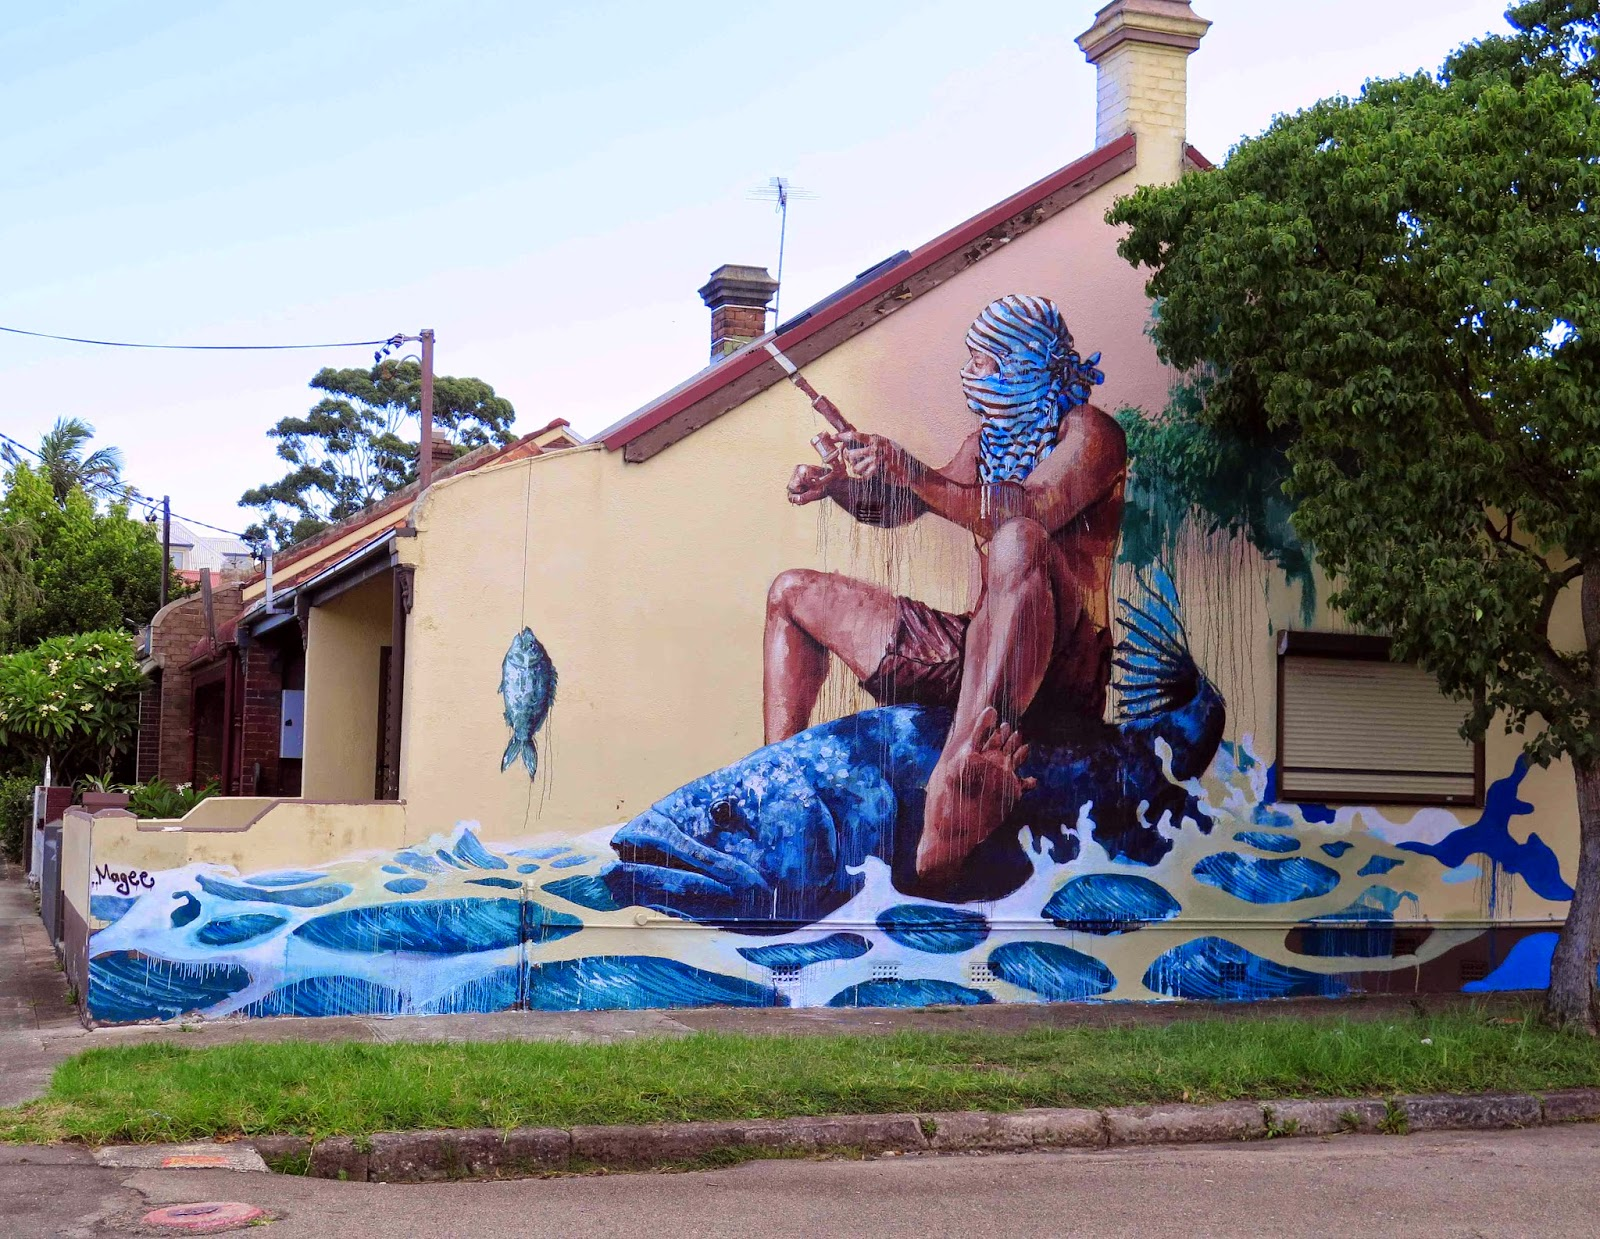 Constantly busy on the streets of Sydney, Australia, our friend Fintan Magee just sent us some sweet images from his newest mural in Leichhardt, a suburb in the Inner West of the city.